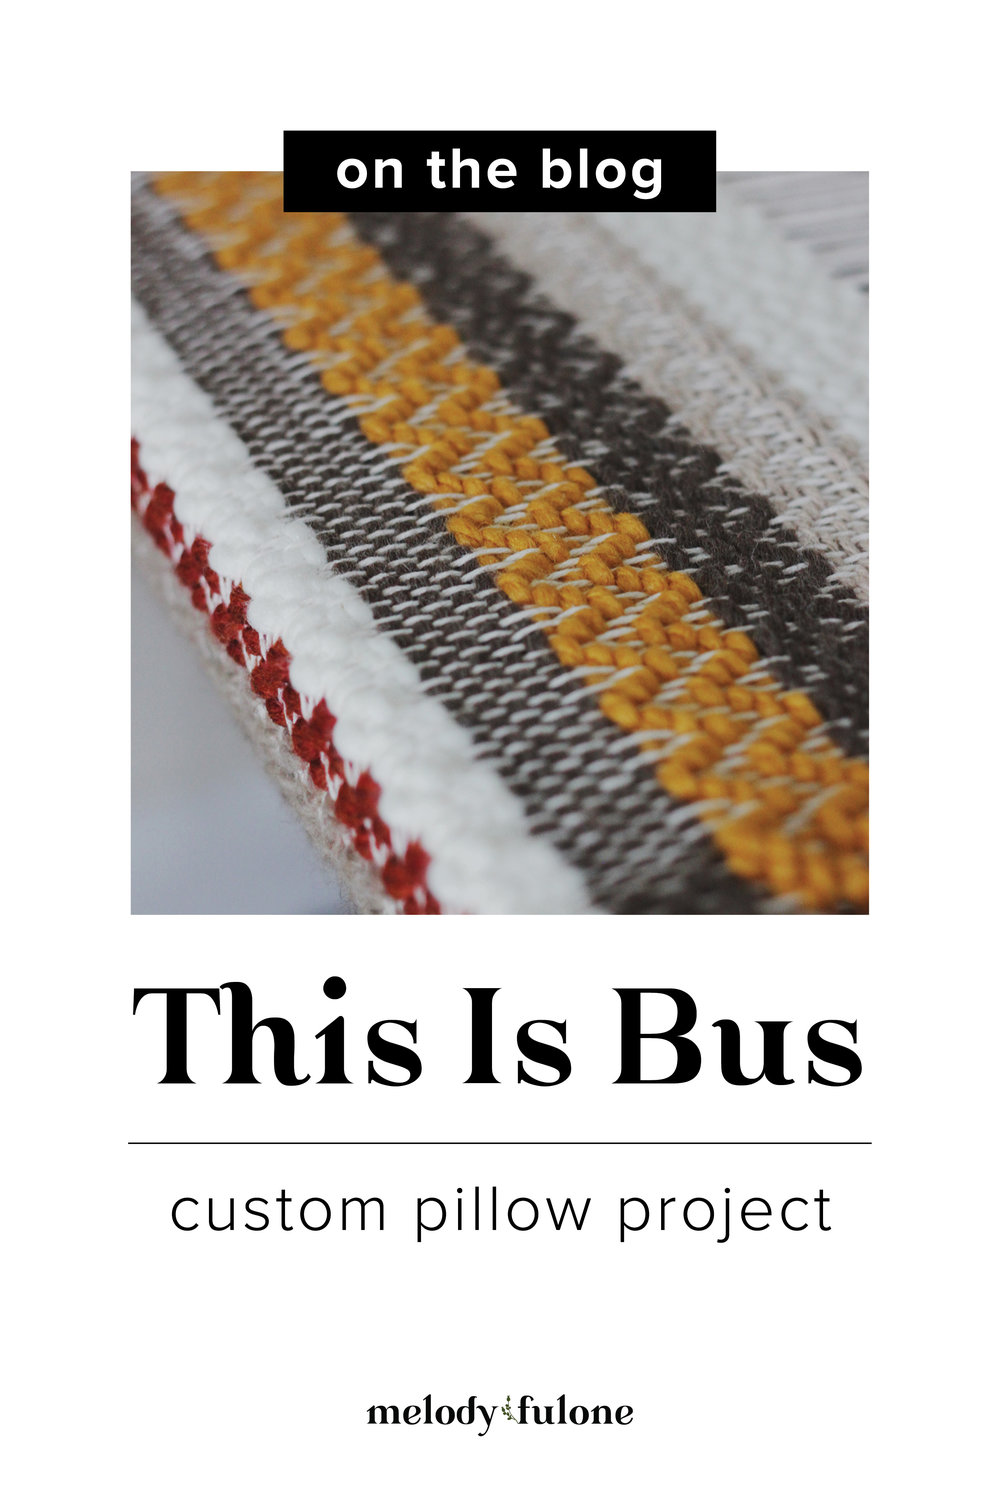 This Is Bus Pillow Project